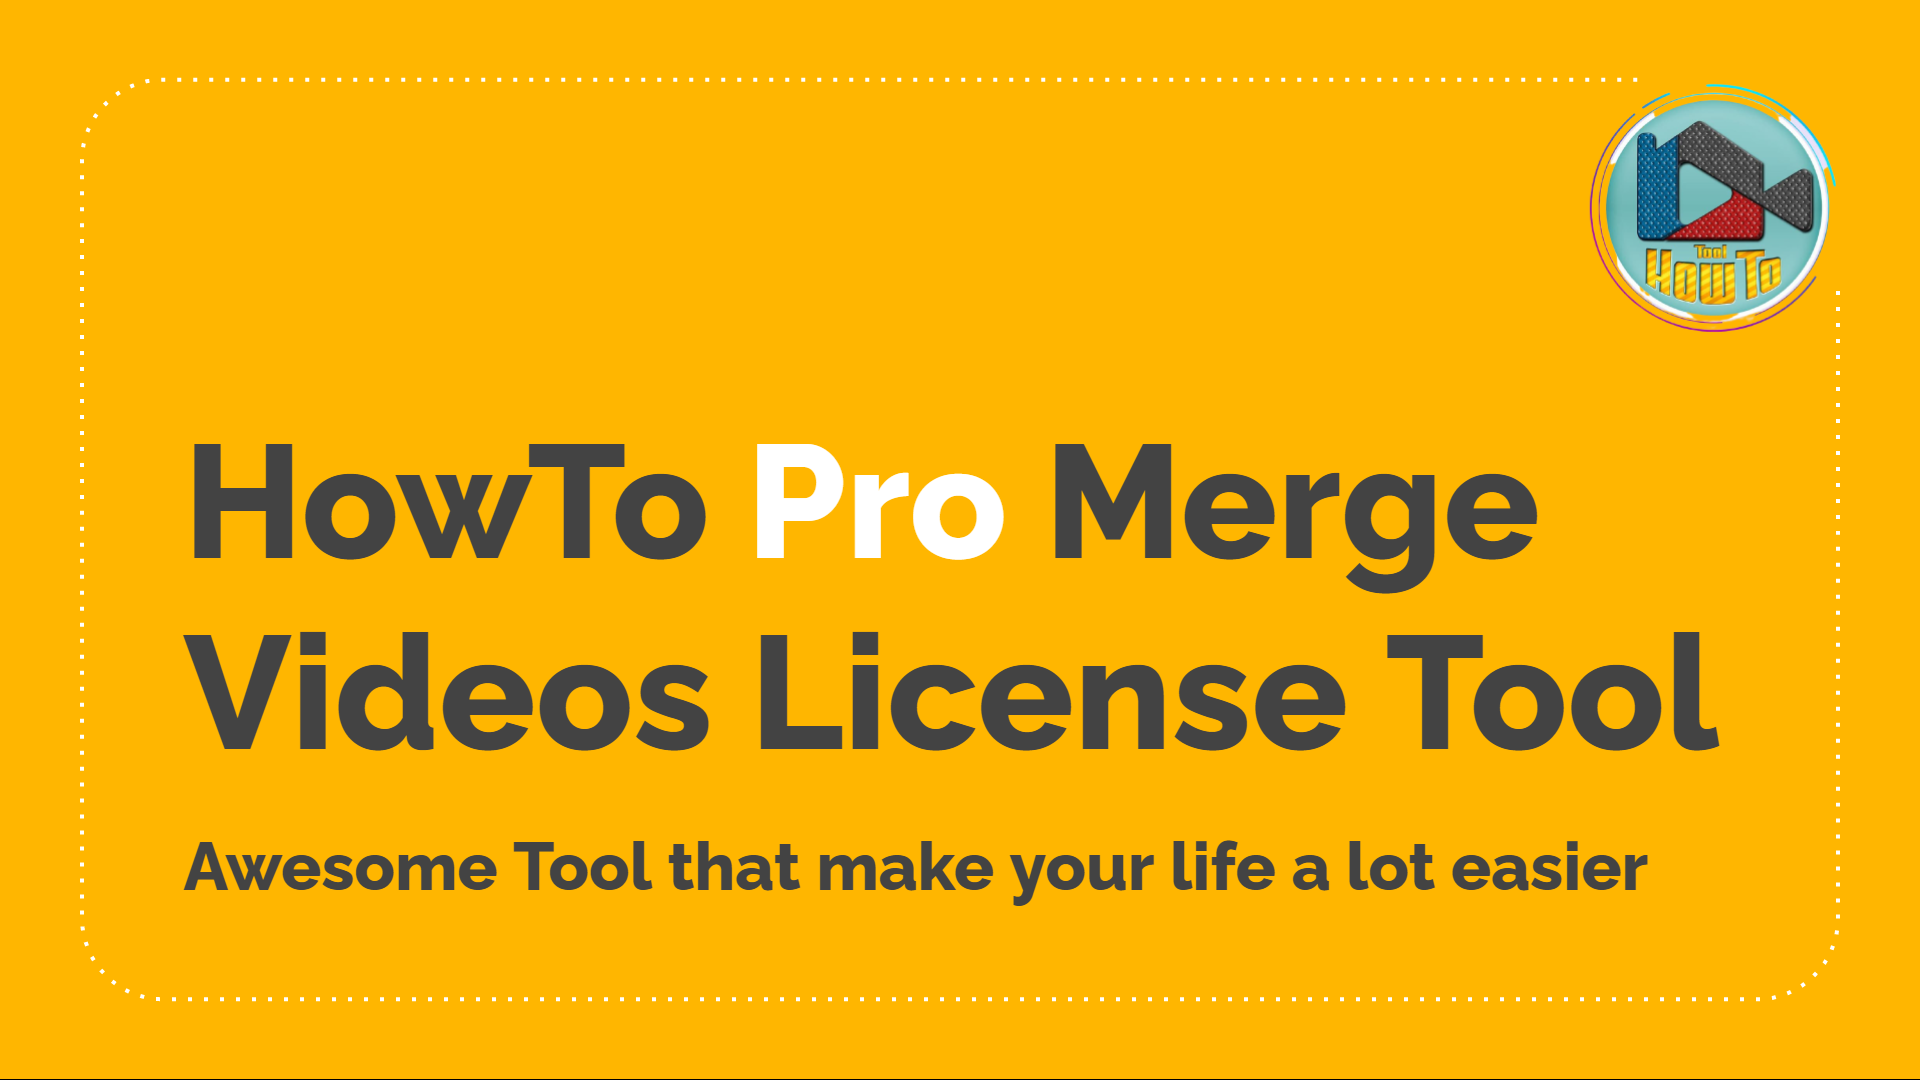 HowTo - Pro License Lifetime [Merge Videos Tool]